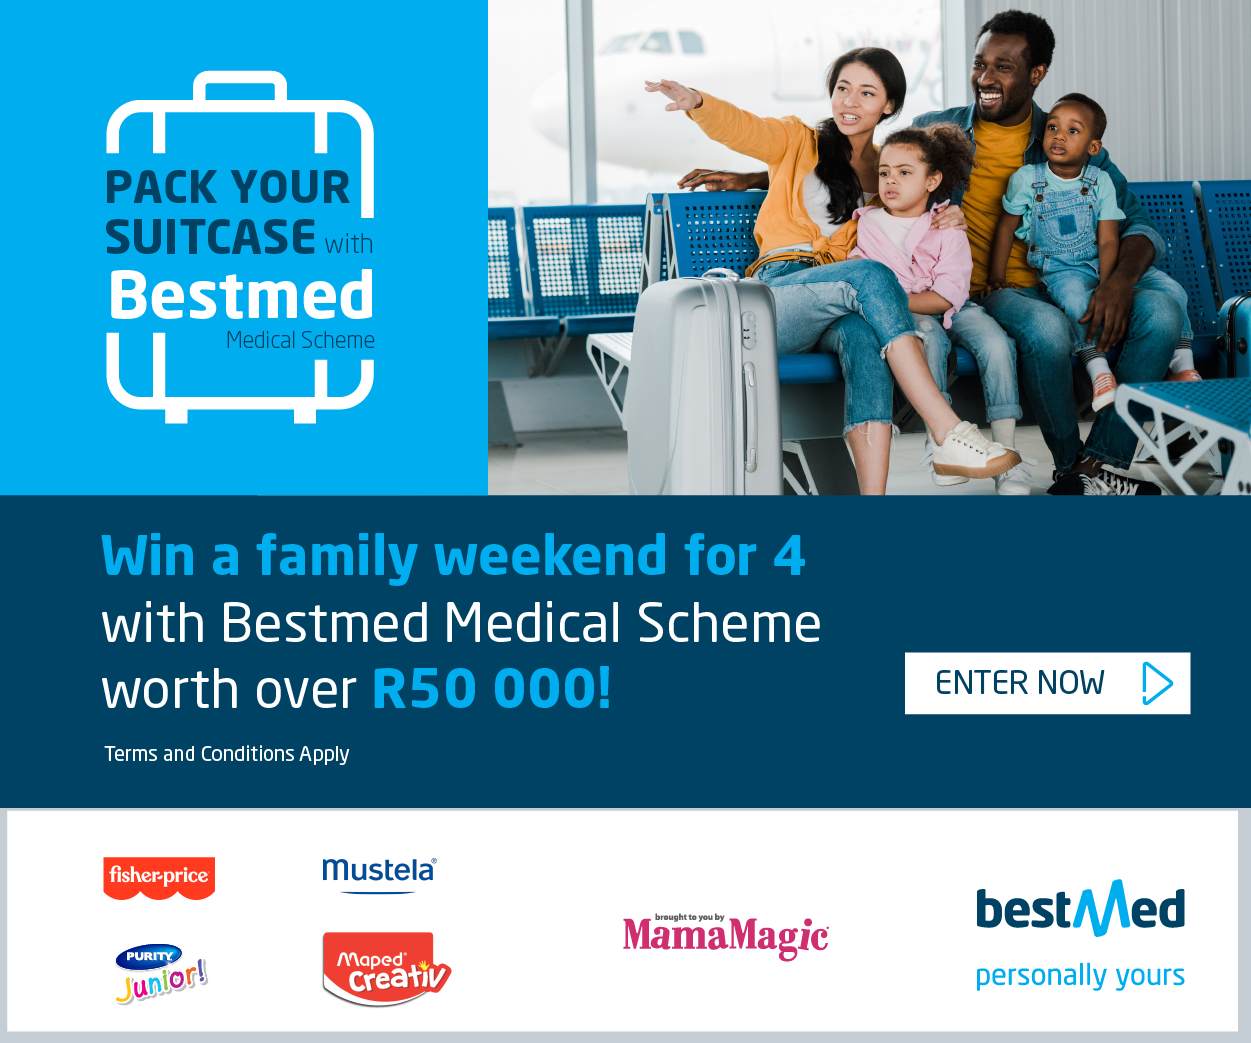 Exposure Marketing Connects Bestmed With The Parenting Sector